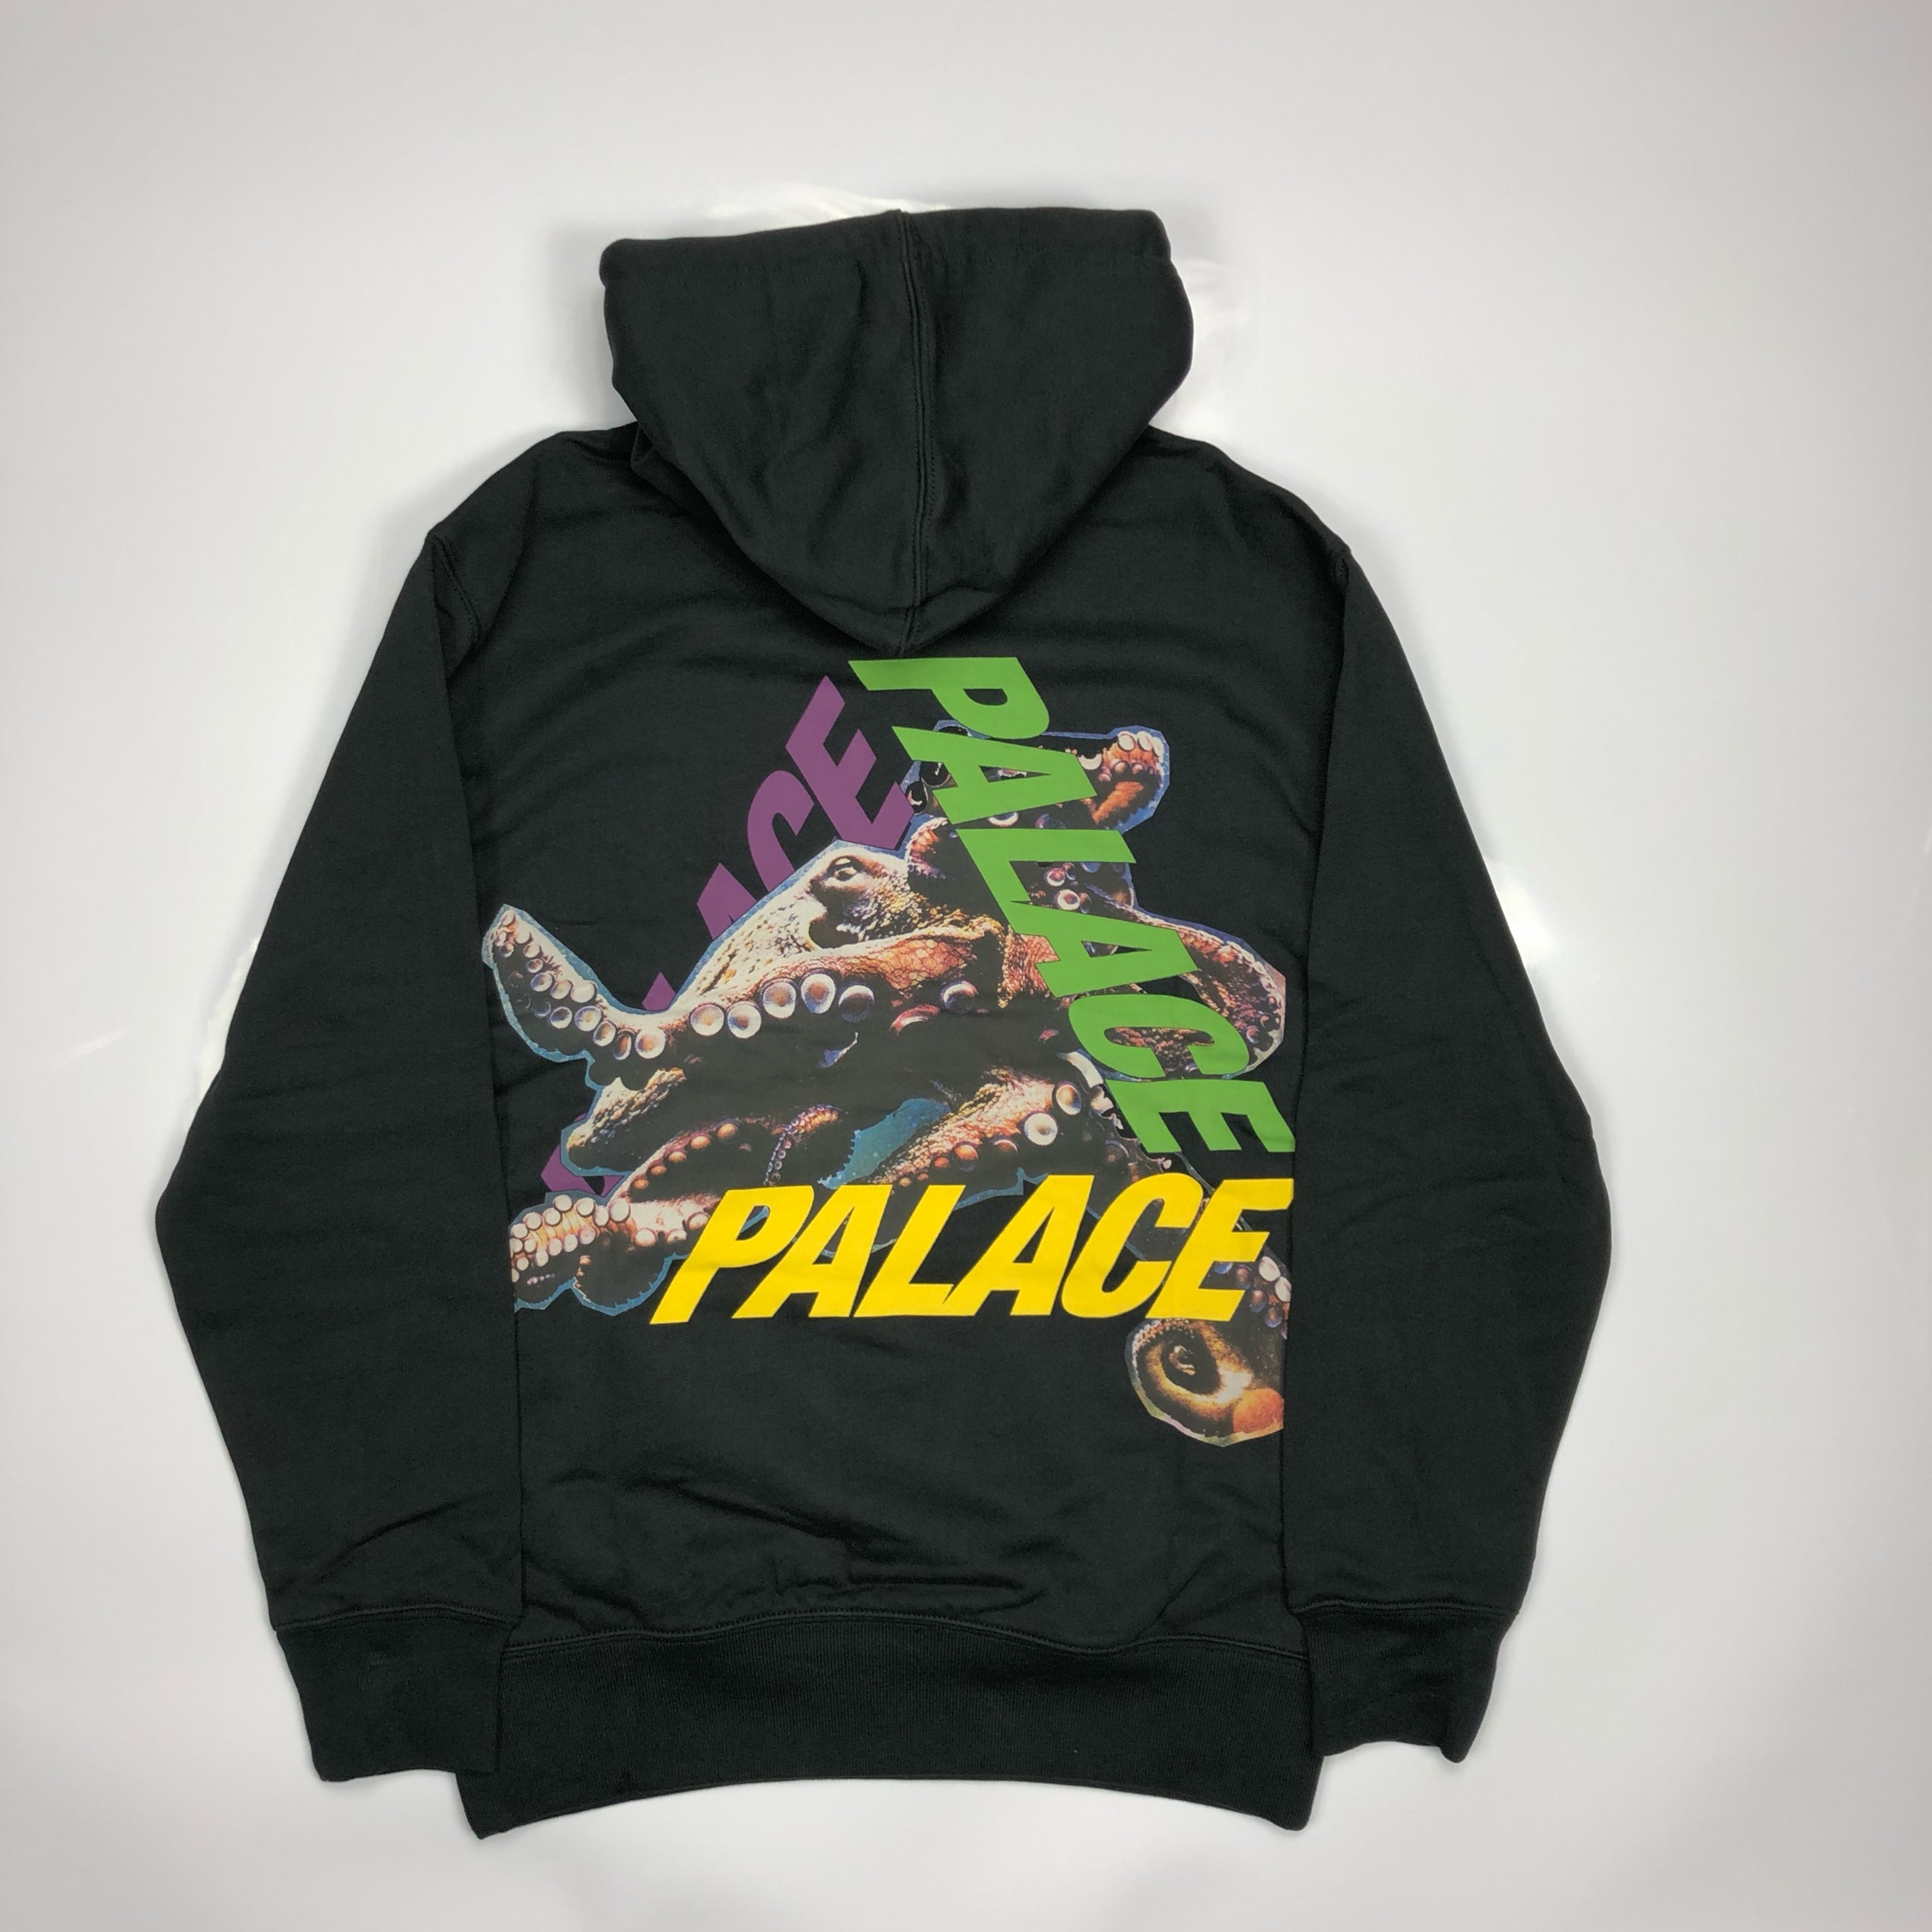 Palace Octo Tri Ferg Hoodie Small Black New